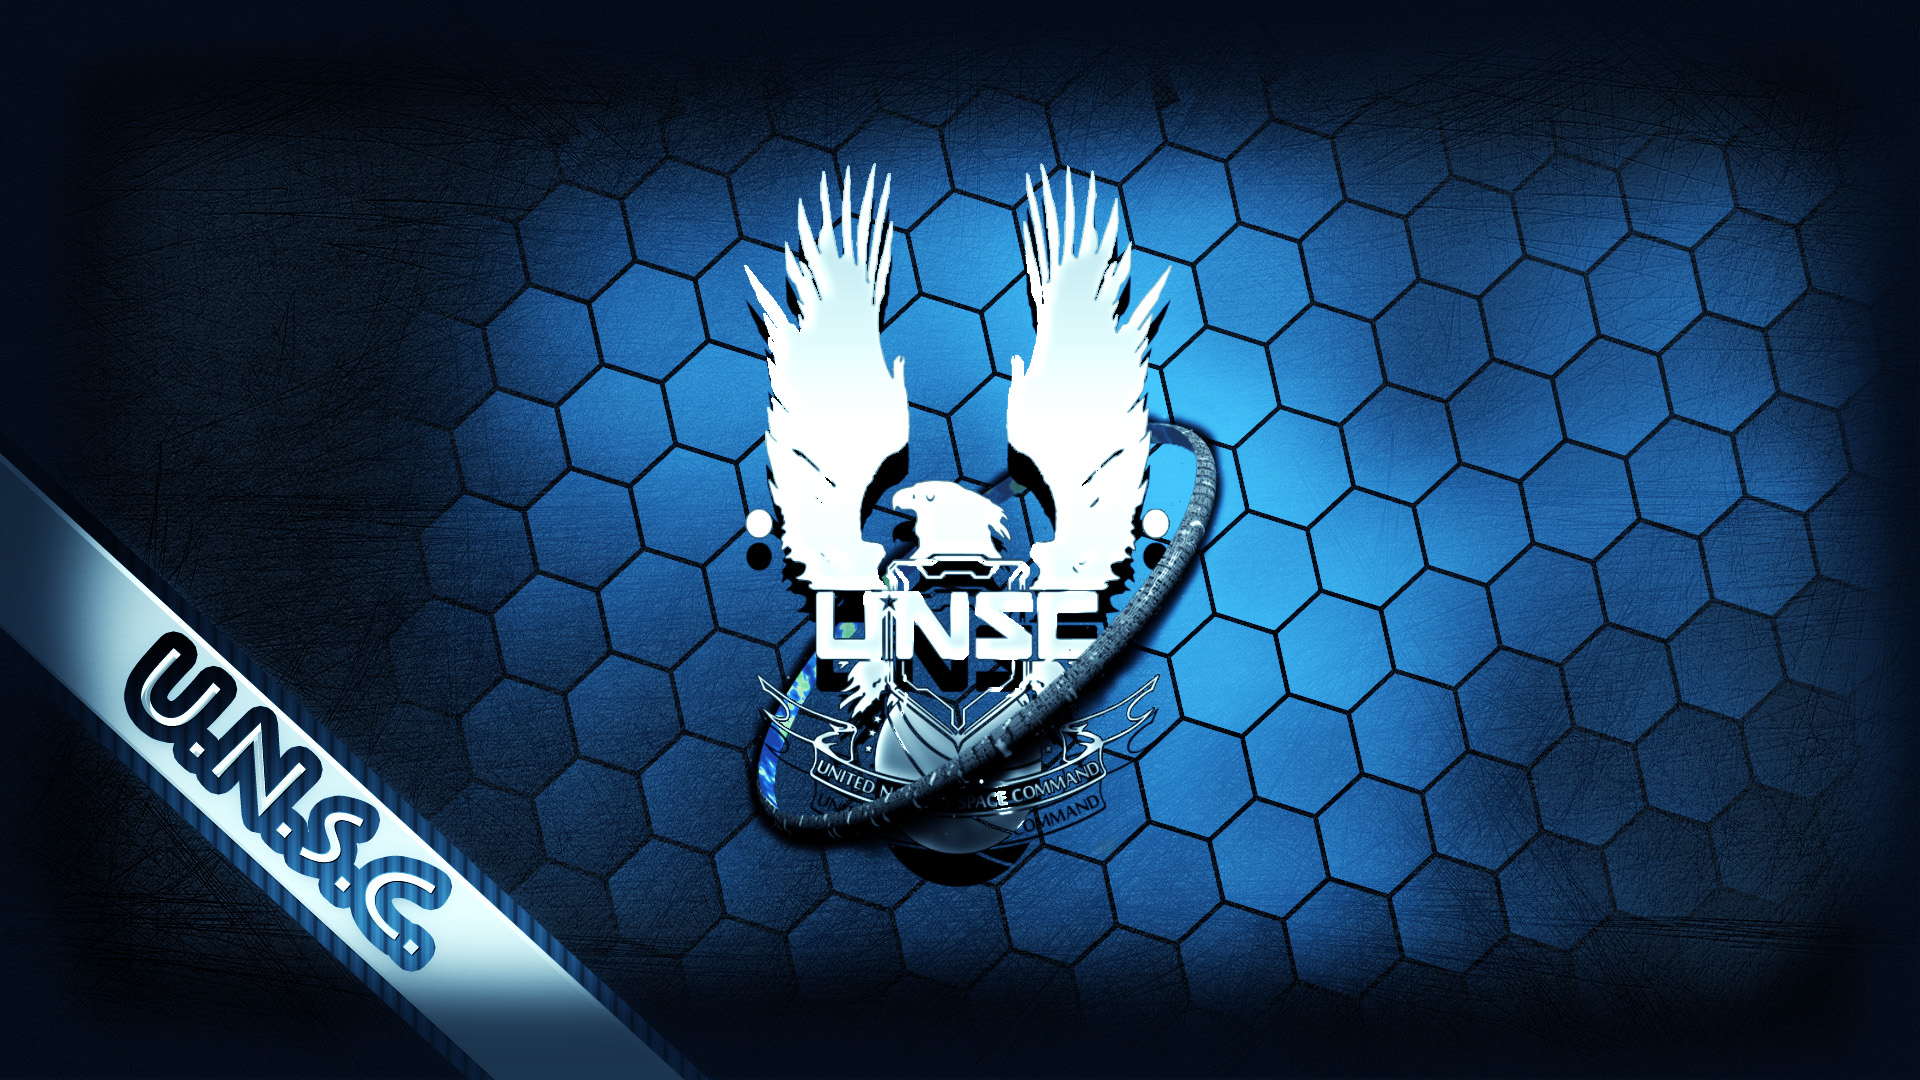 Halo-United-Nations-Space-Command-Symbol-Wallpaper